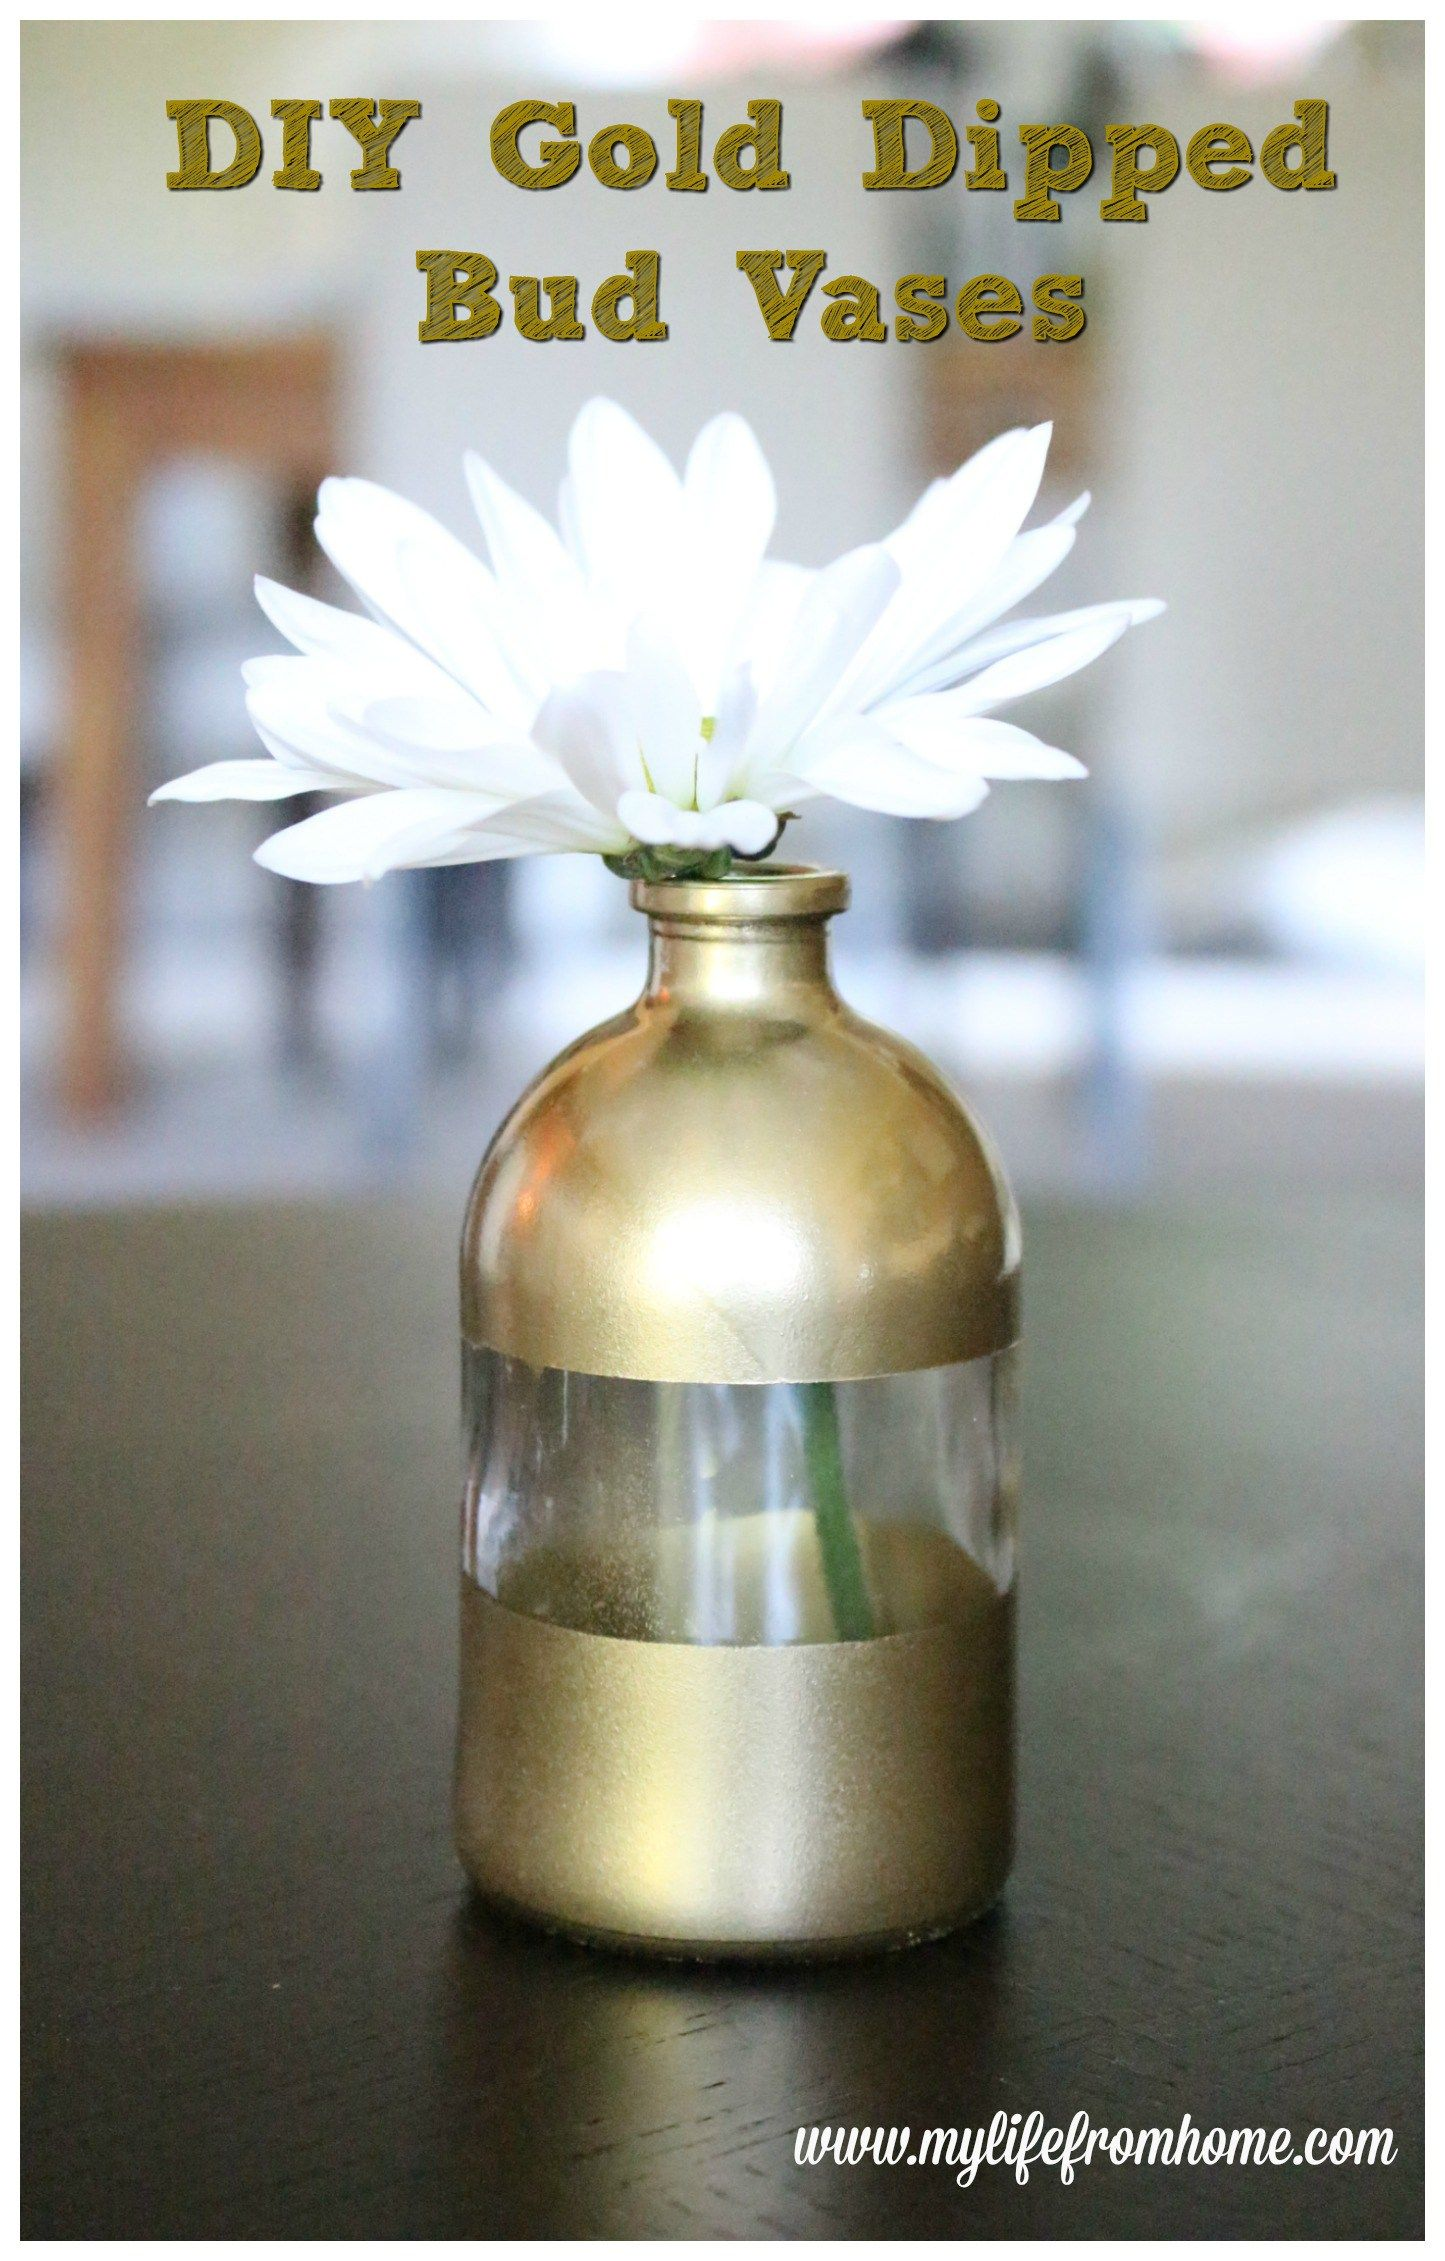 Have You Seen Those Gorgeous Gold Dipped Vases? They Are Seen In High End Home  Decor Magazines And Usually,